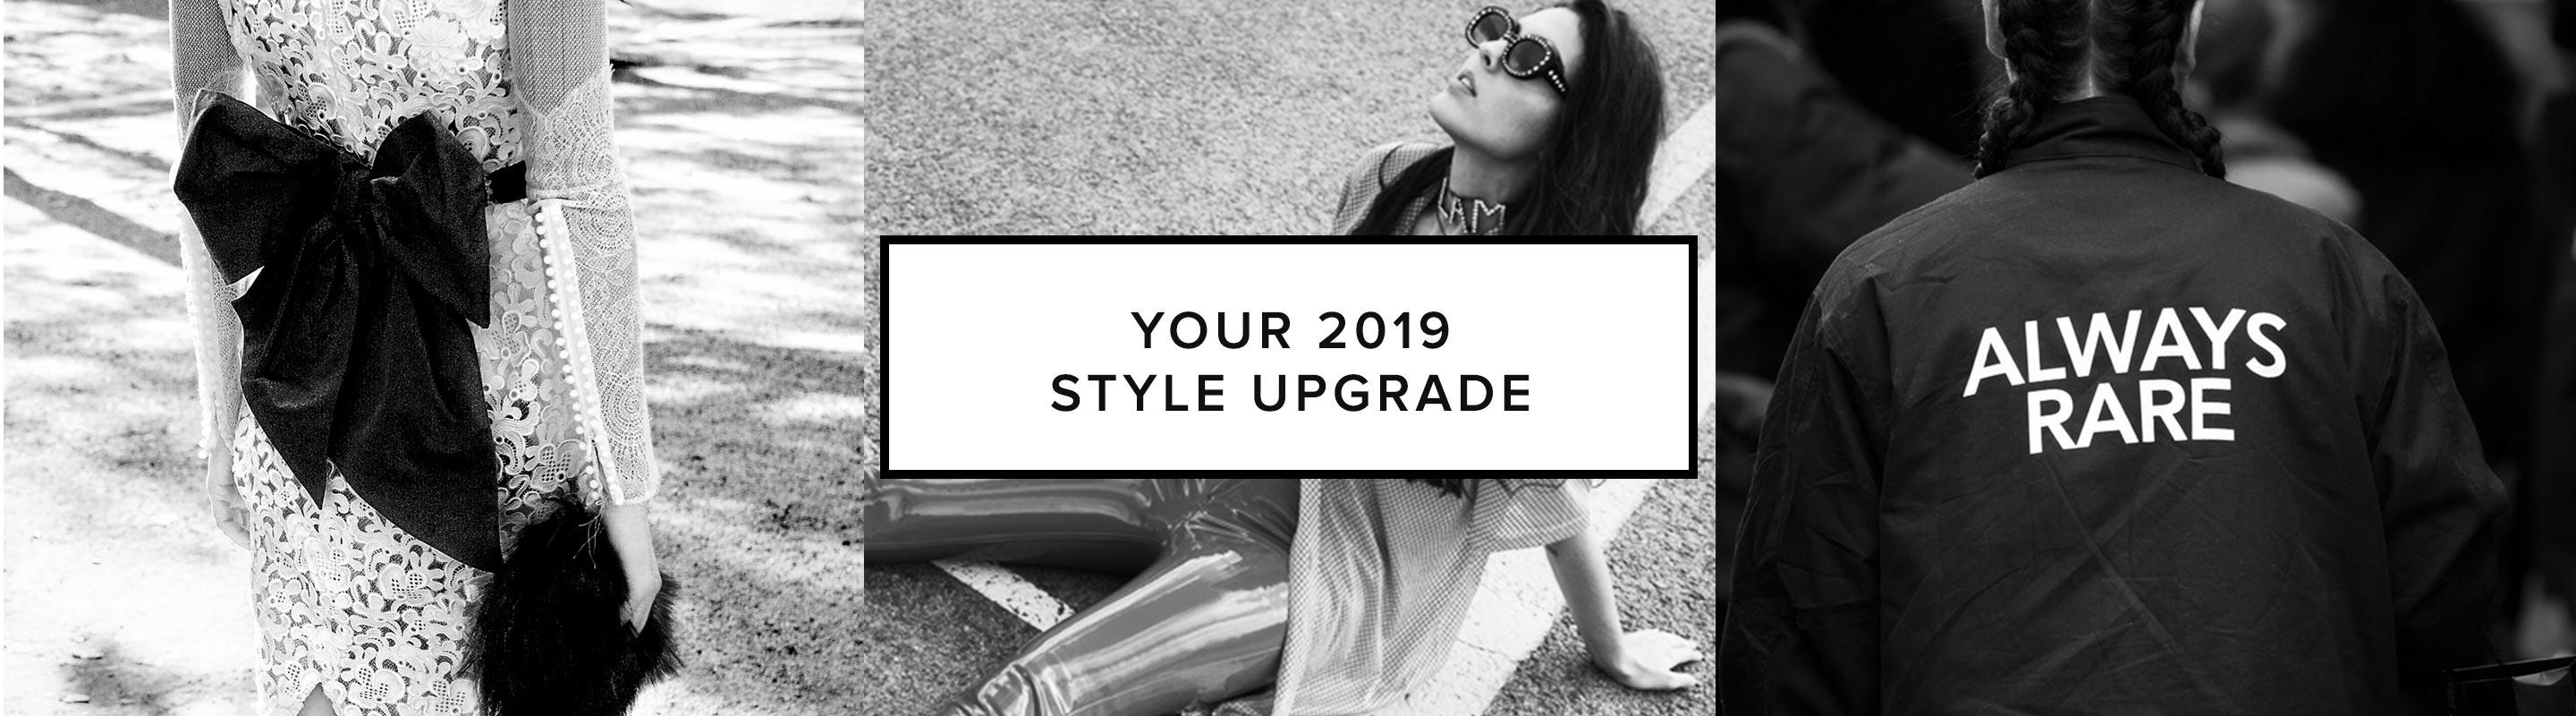 Your 2019 Style Upgrade